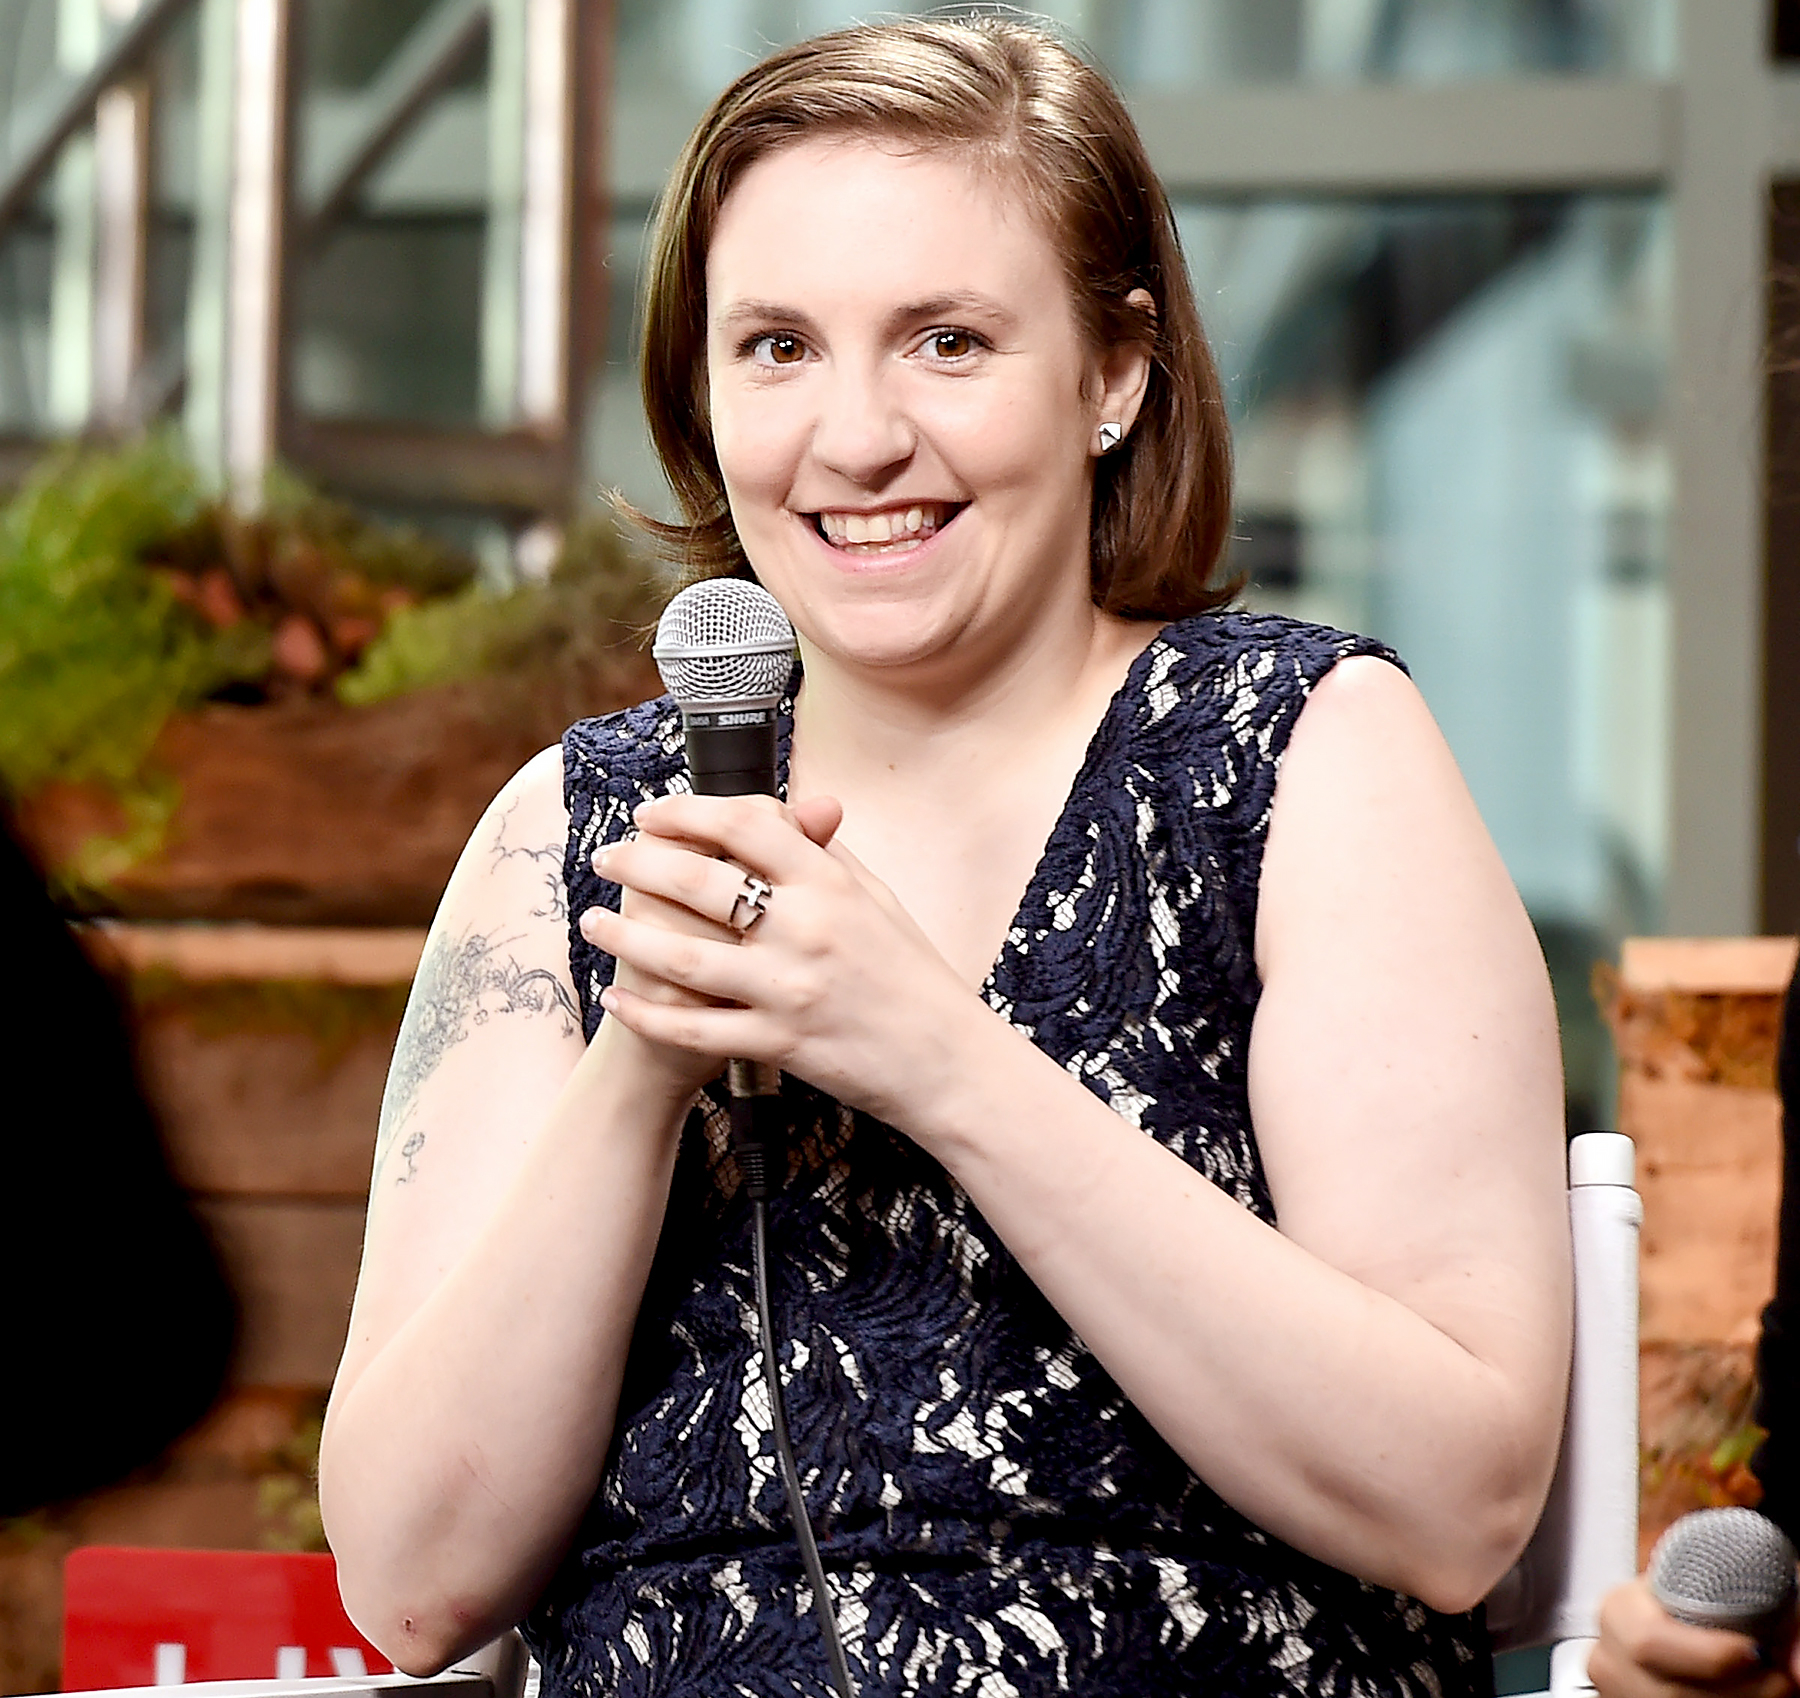 Lena Dunham speak at the Glamour And Facebook Host Conversation With Cindi Leive, Chelsea Clinton, Lena Dunham, America Ferrera At The Democratic National Convention on July 26, 2016 in Philadelphia, Pennsylvania.